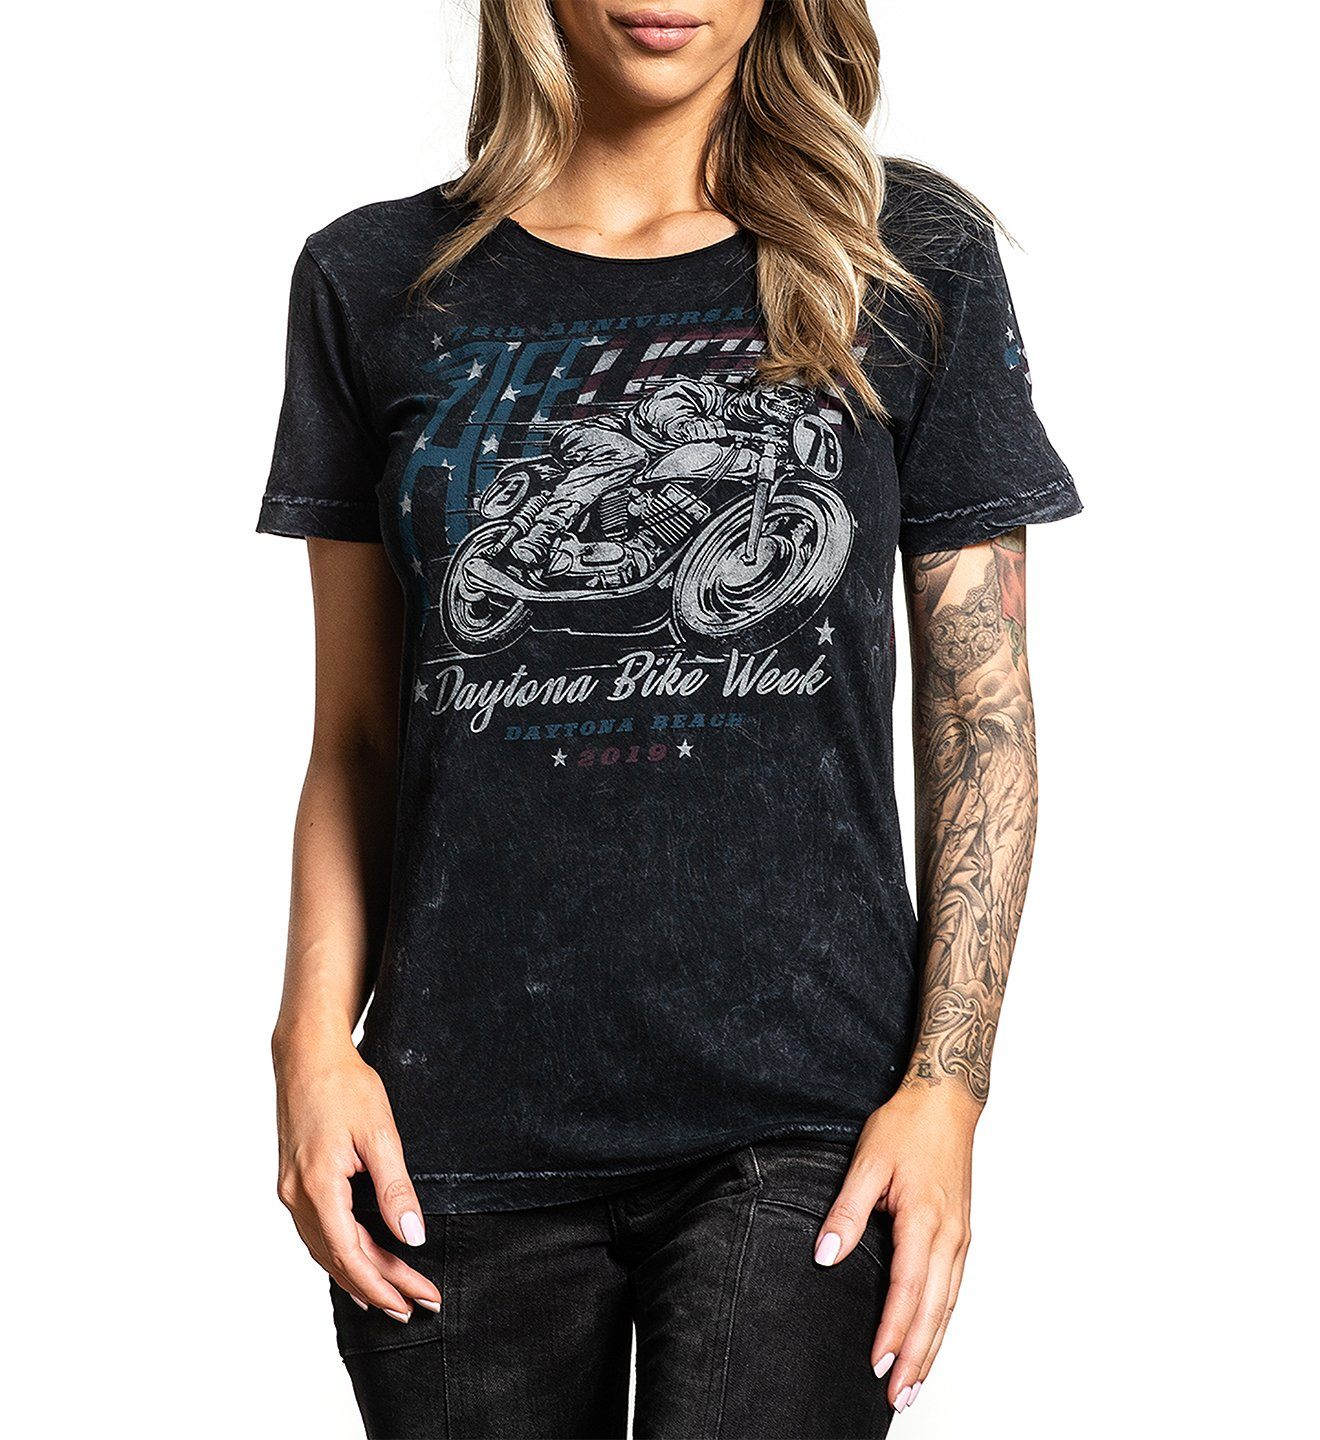 Womens Short Sleeve Tees - Daytona 2019